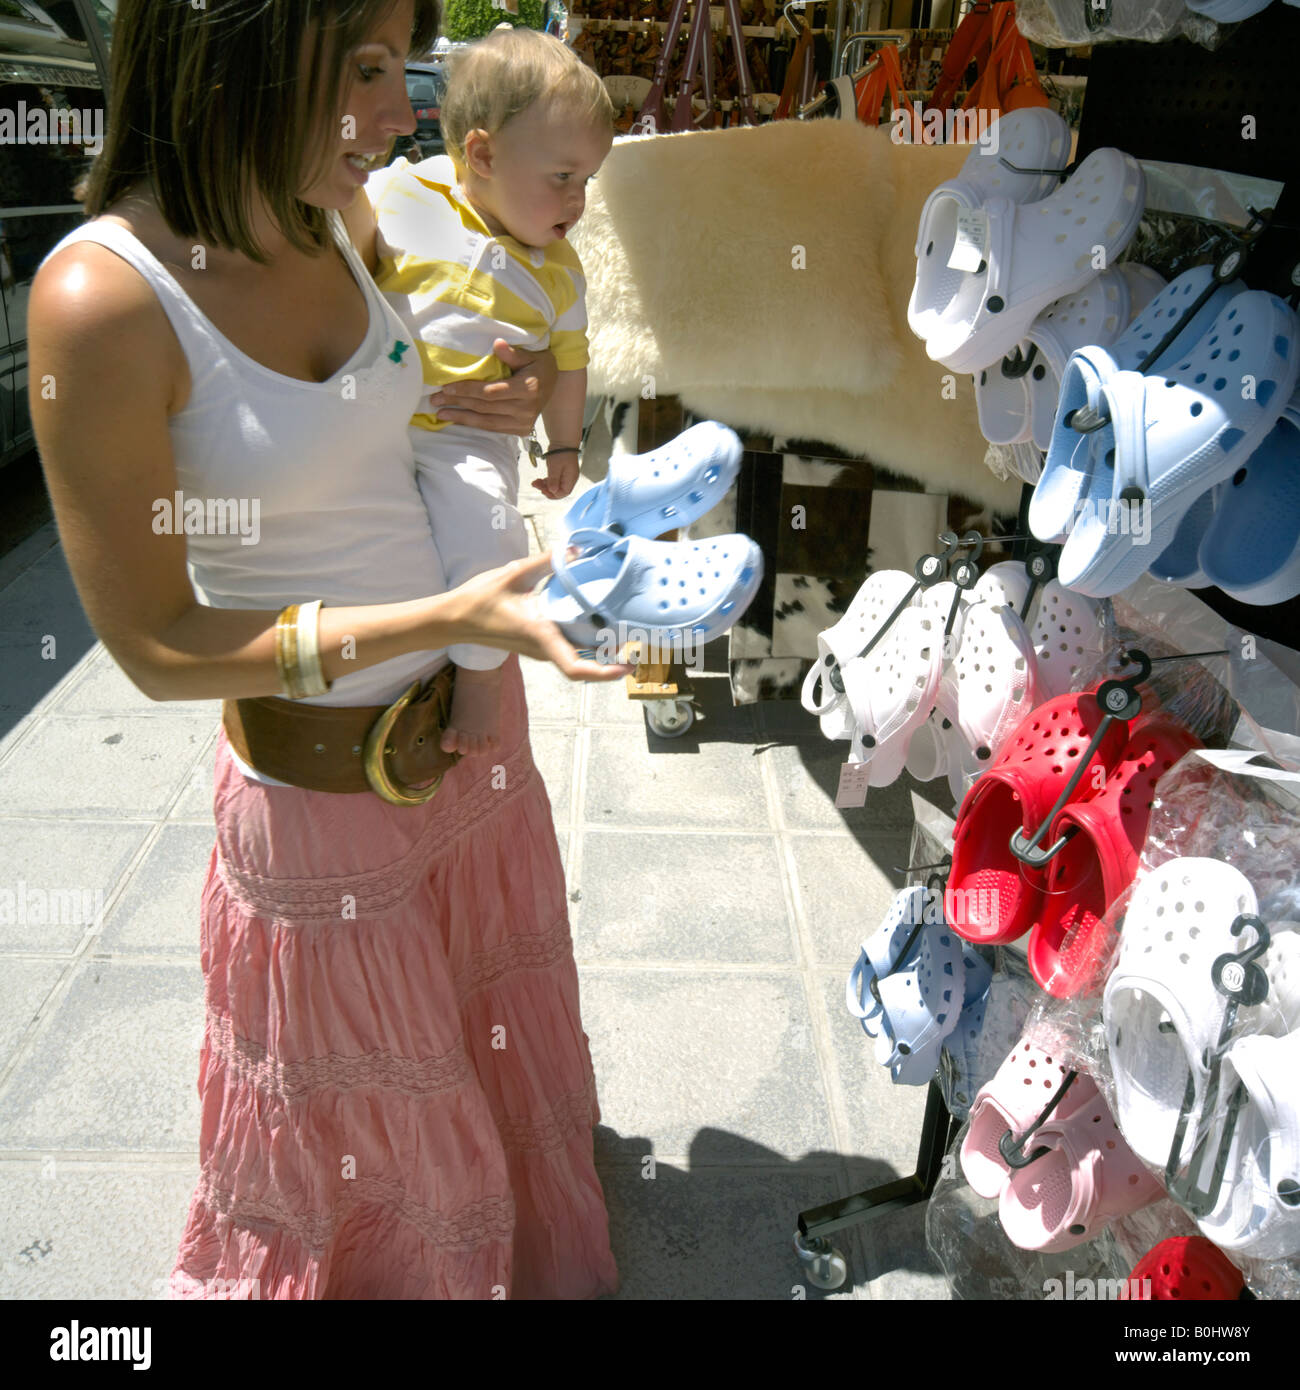 Mother and toddler shopping for ugly croc plastic shoes, Mijas Pueblo, Costa del Sol, Andalucia, Spain - Stock Image